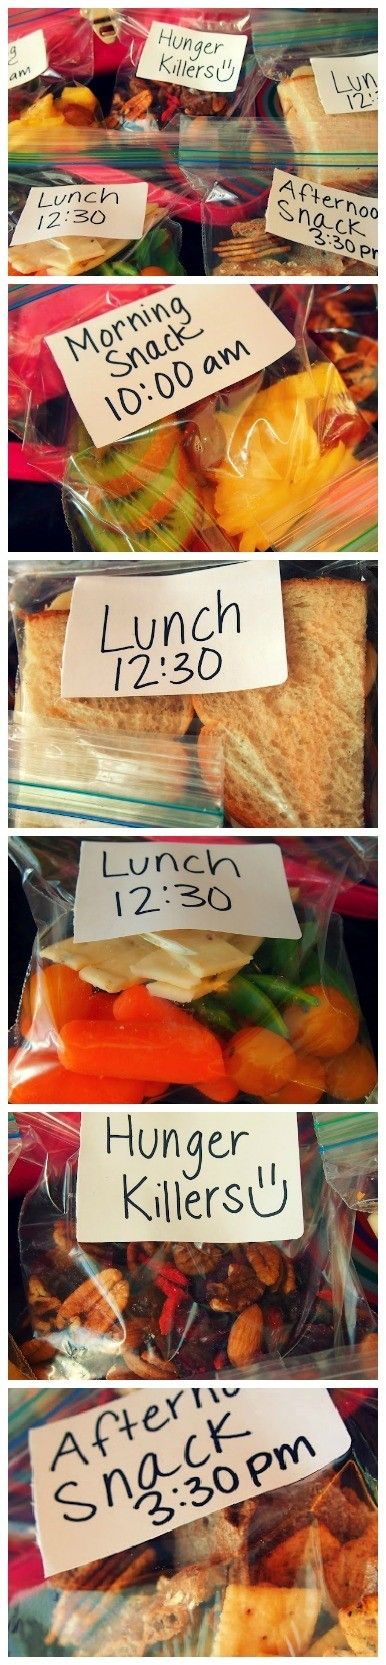 healthy snack ideas! I love how they are all marked! Gonna try it